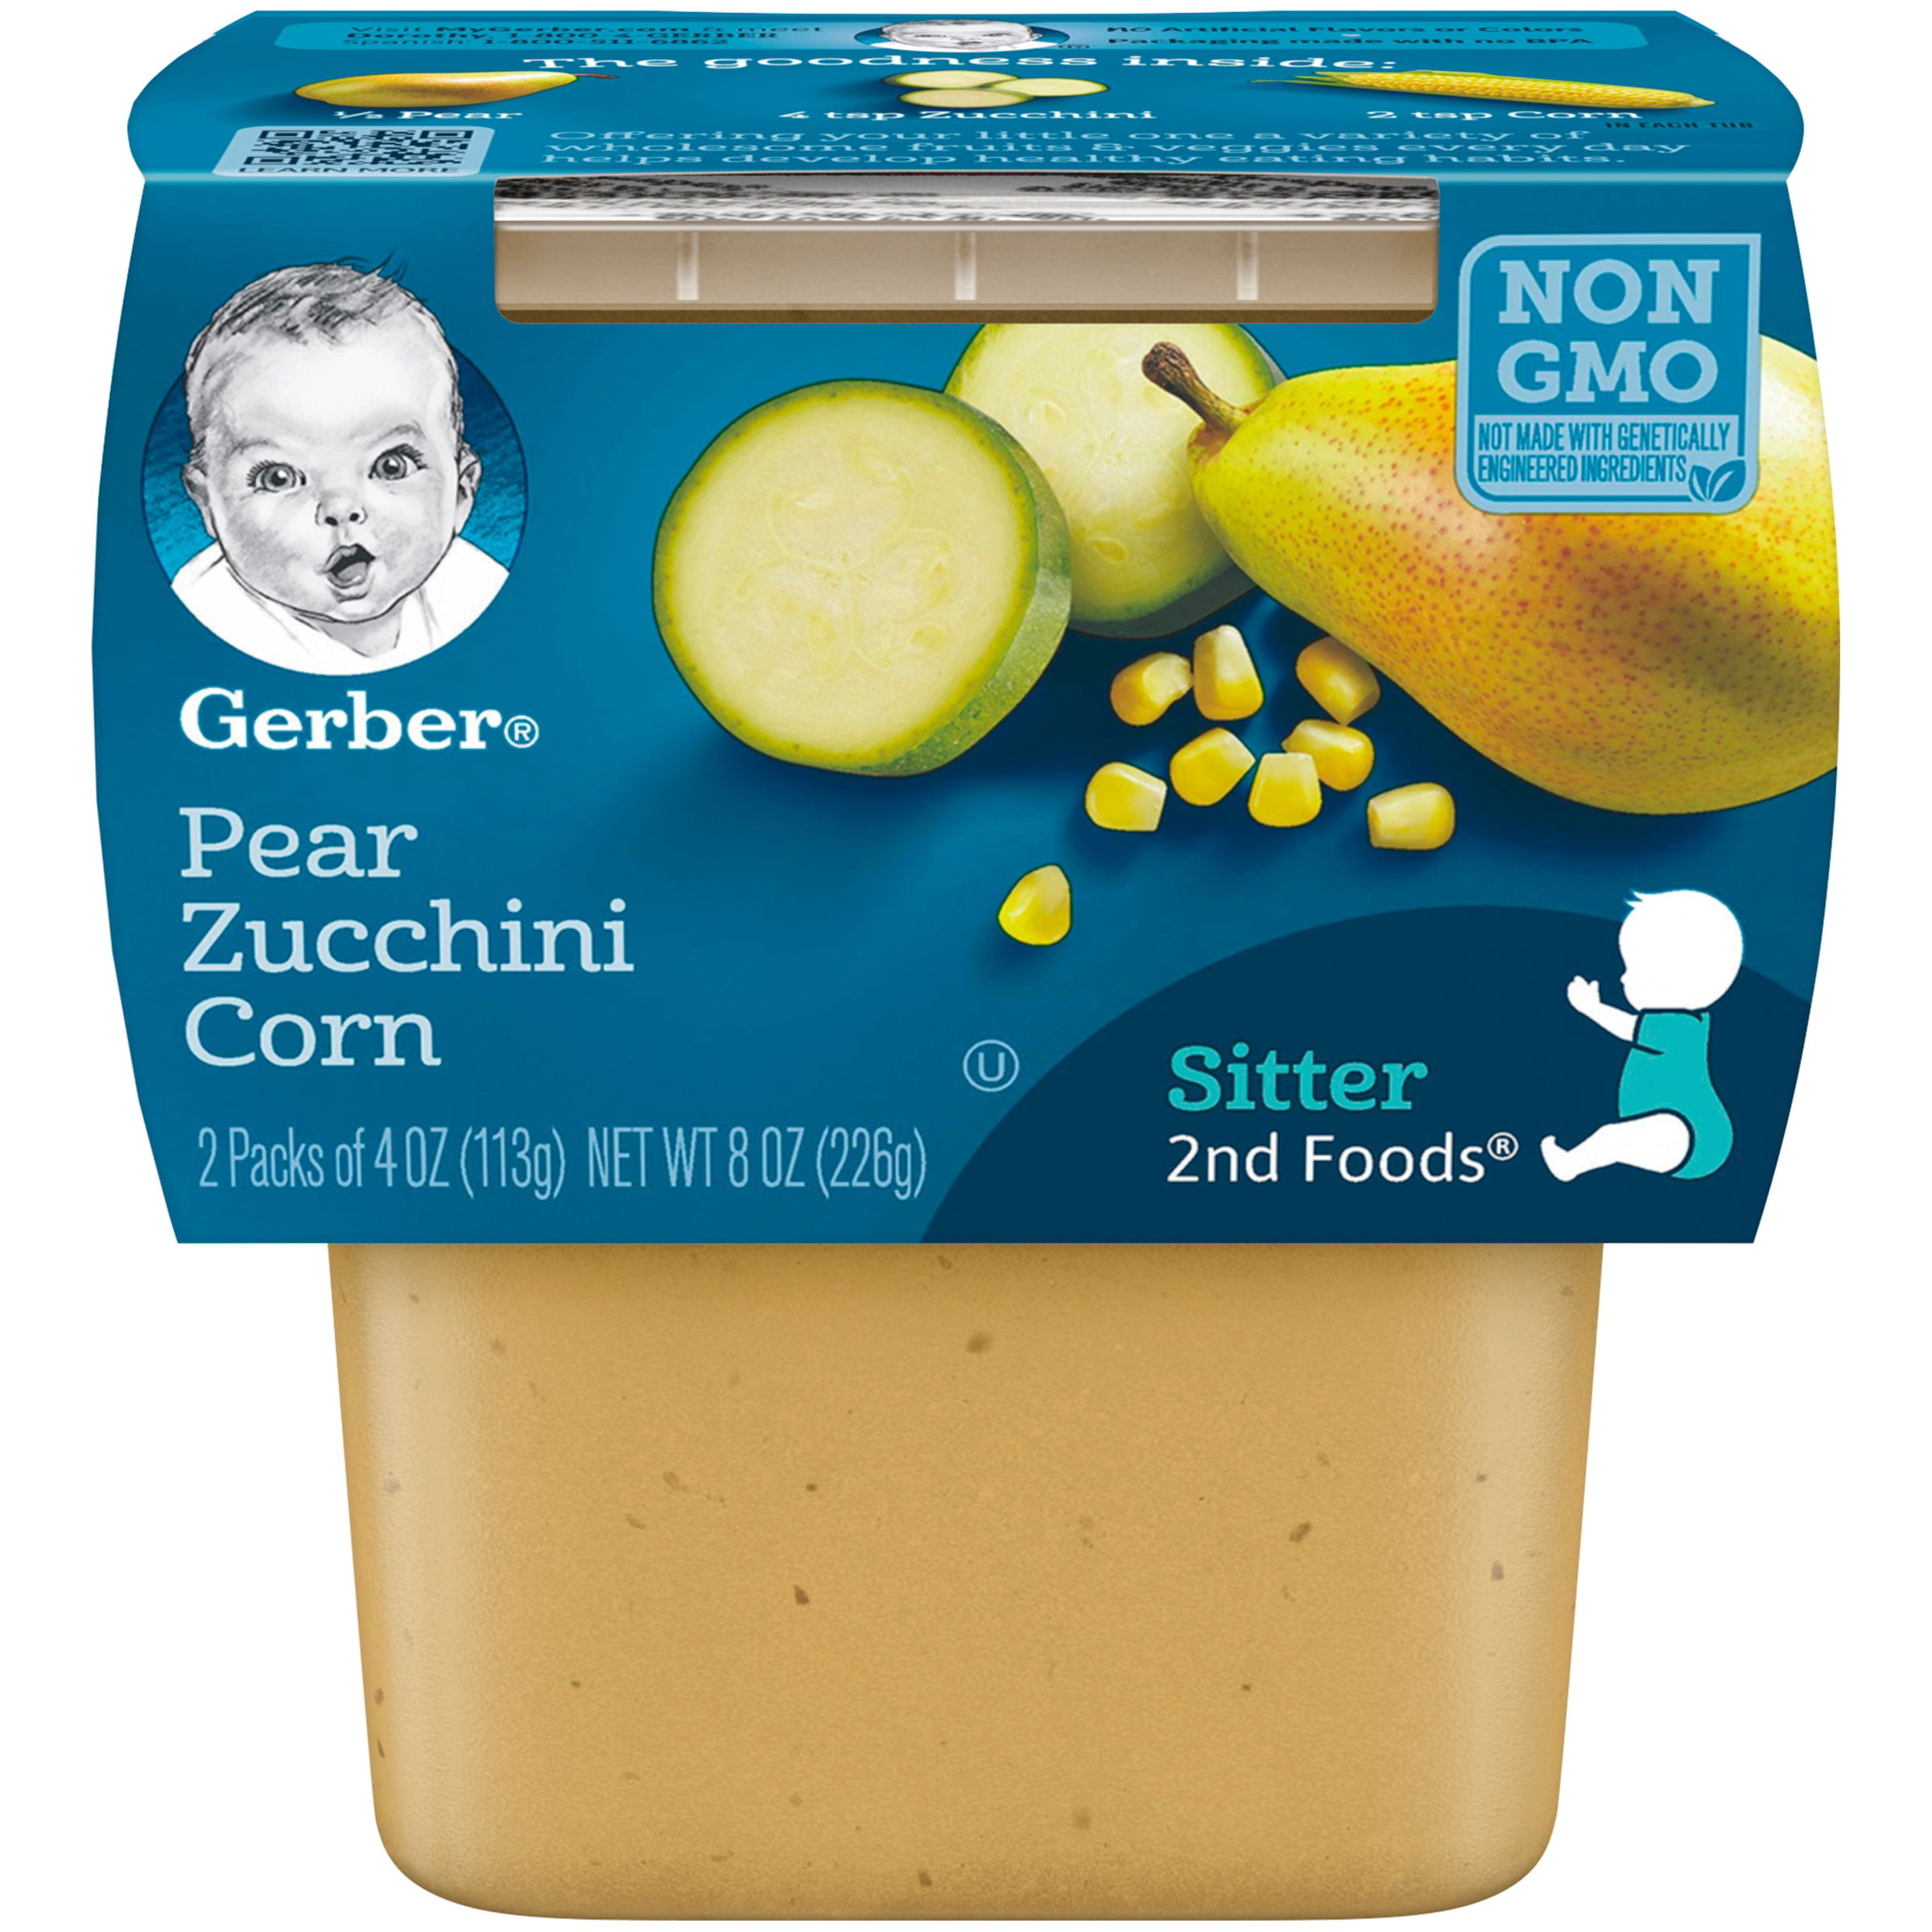 (8 Pack) Gerber 2nd Foods Pear Zucchini Corn Baby Food, 4 oz. Tubs, 2 Count by Gerber